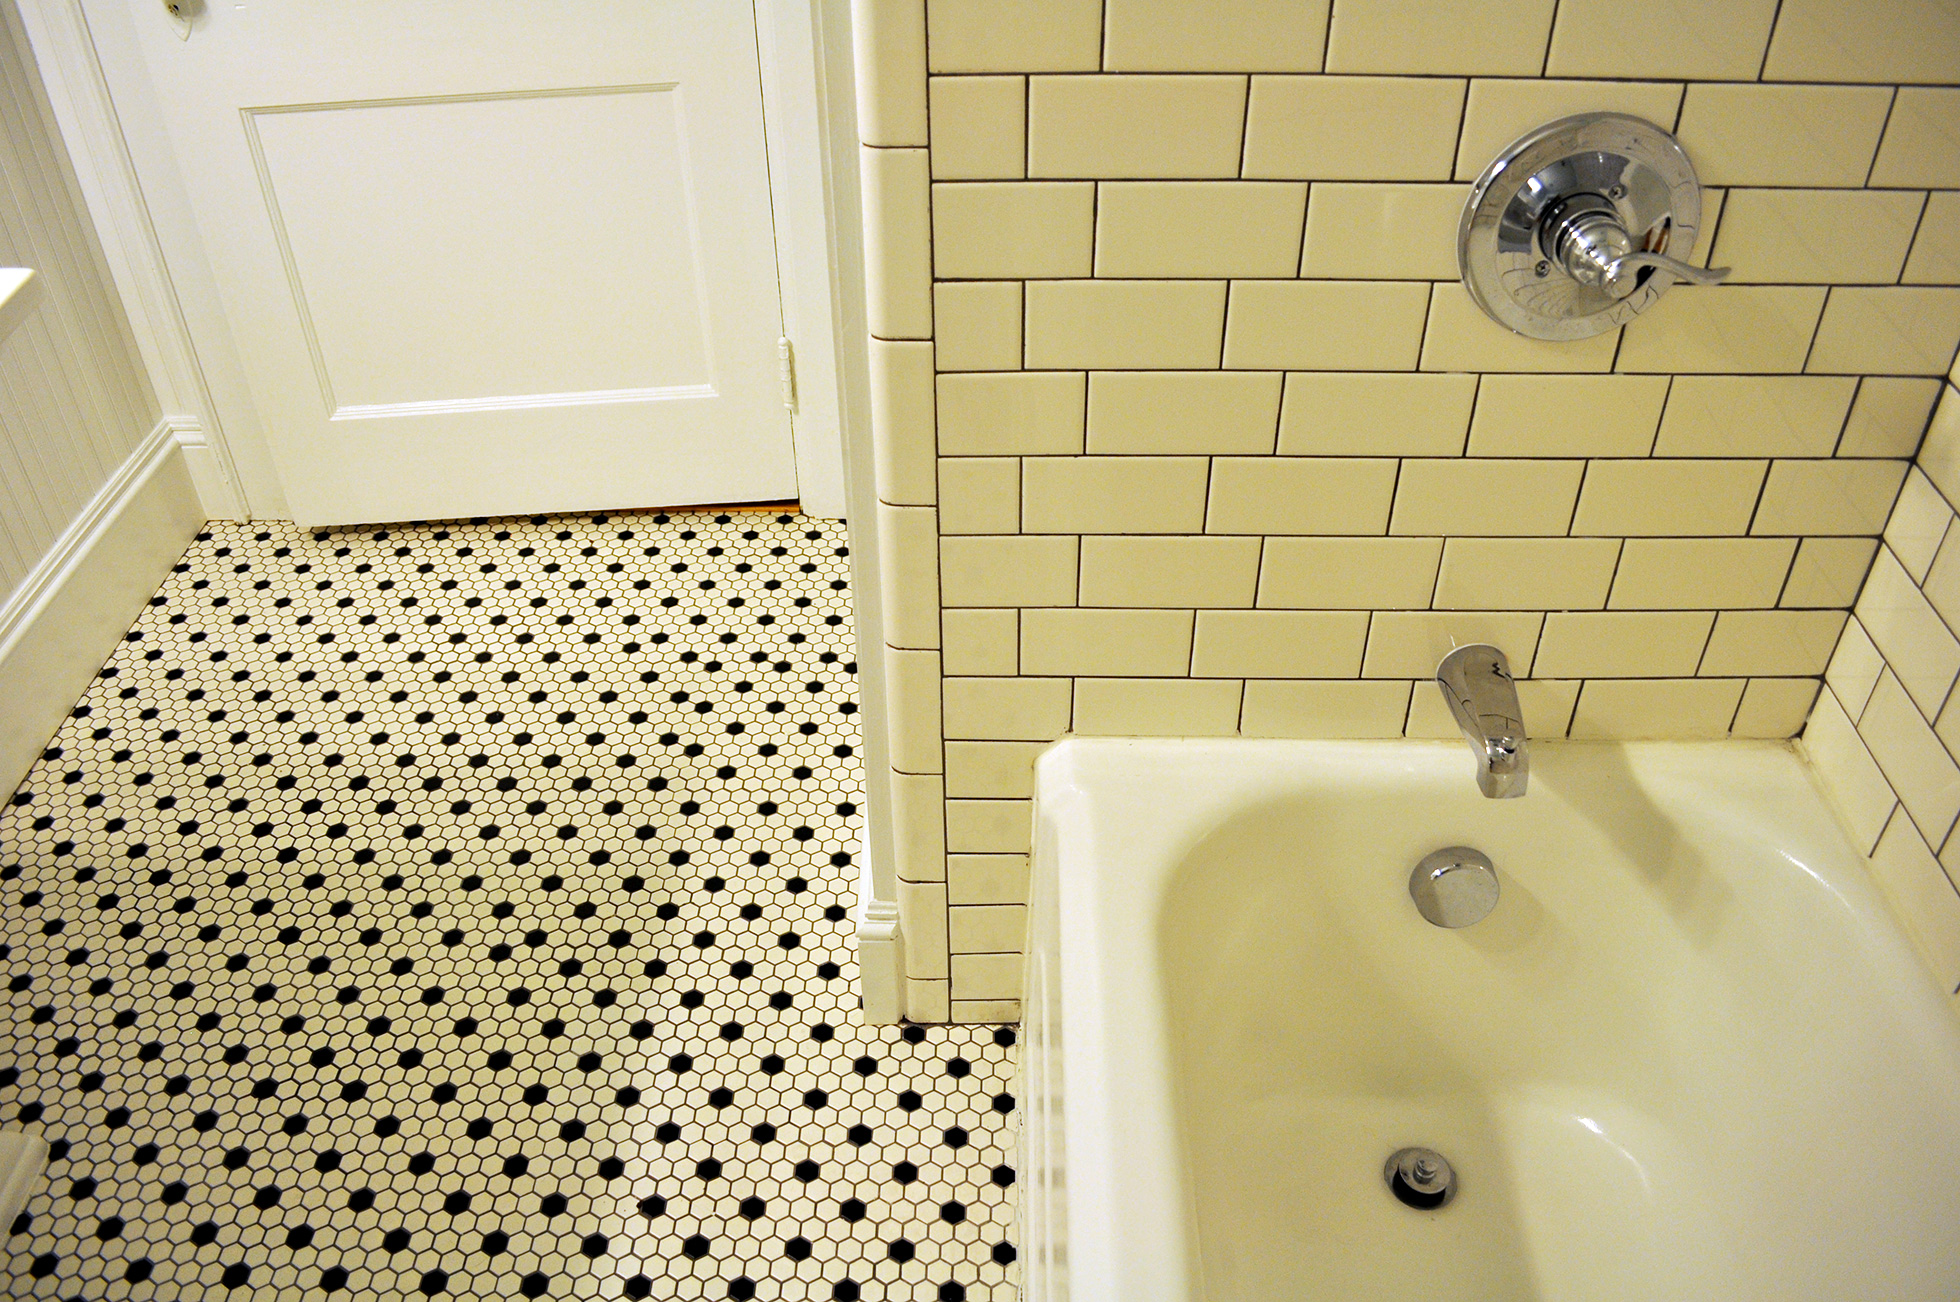 Bathroom Ideas Bathroom Remodel Ideas HouseLogic Bathrooms - Best flooring to use in bathroom